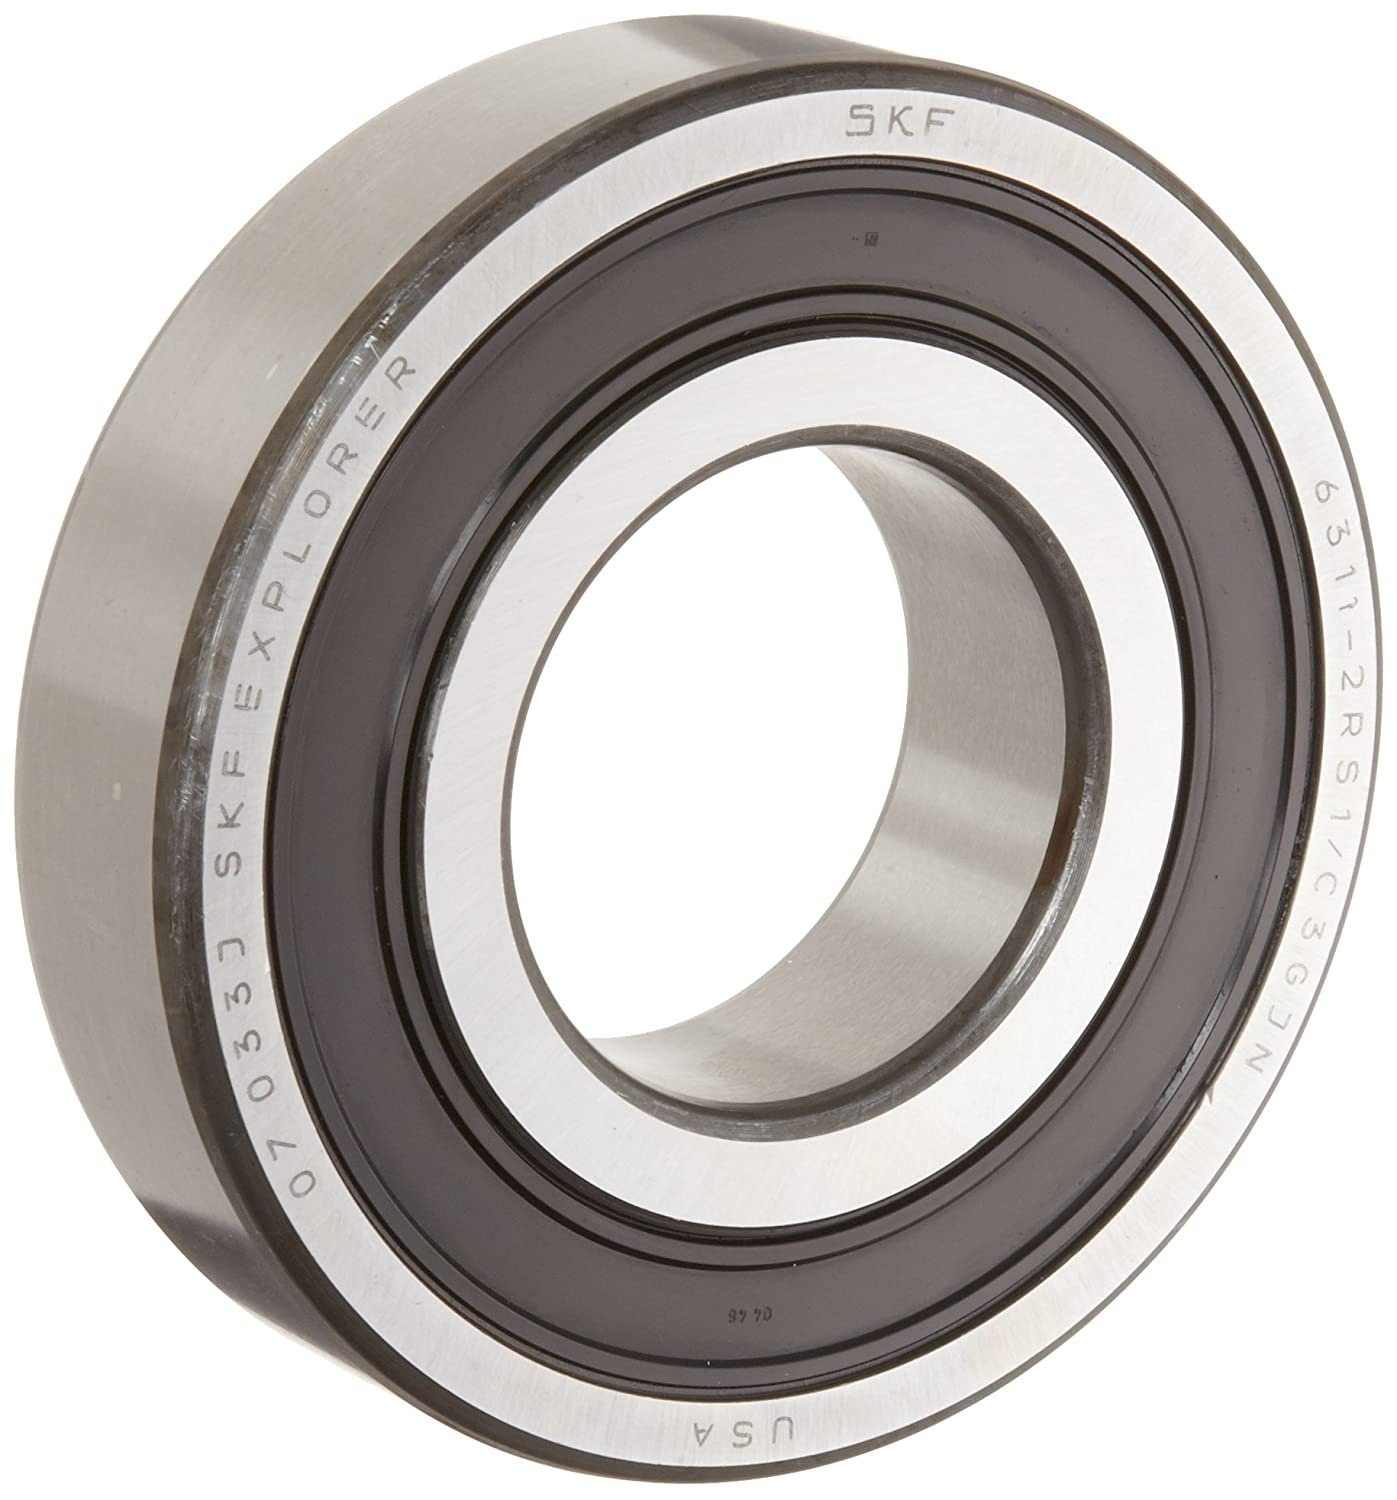 10 pcs 6203-2RSH SKF rubber seals ball bearing Made in France free shipping